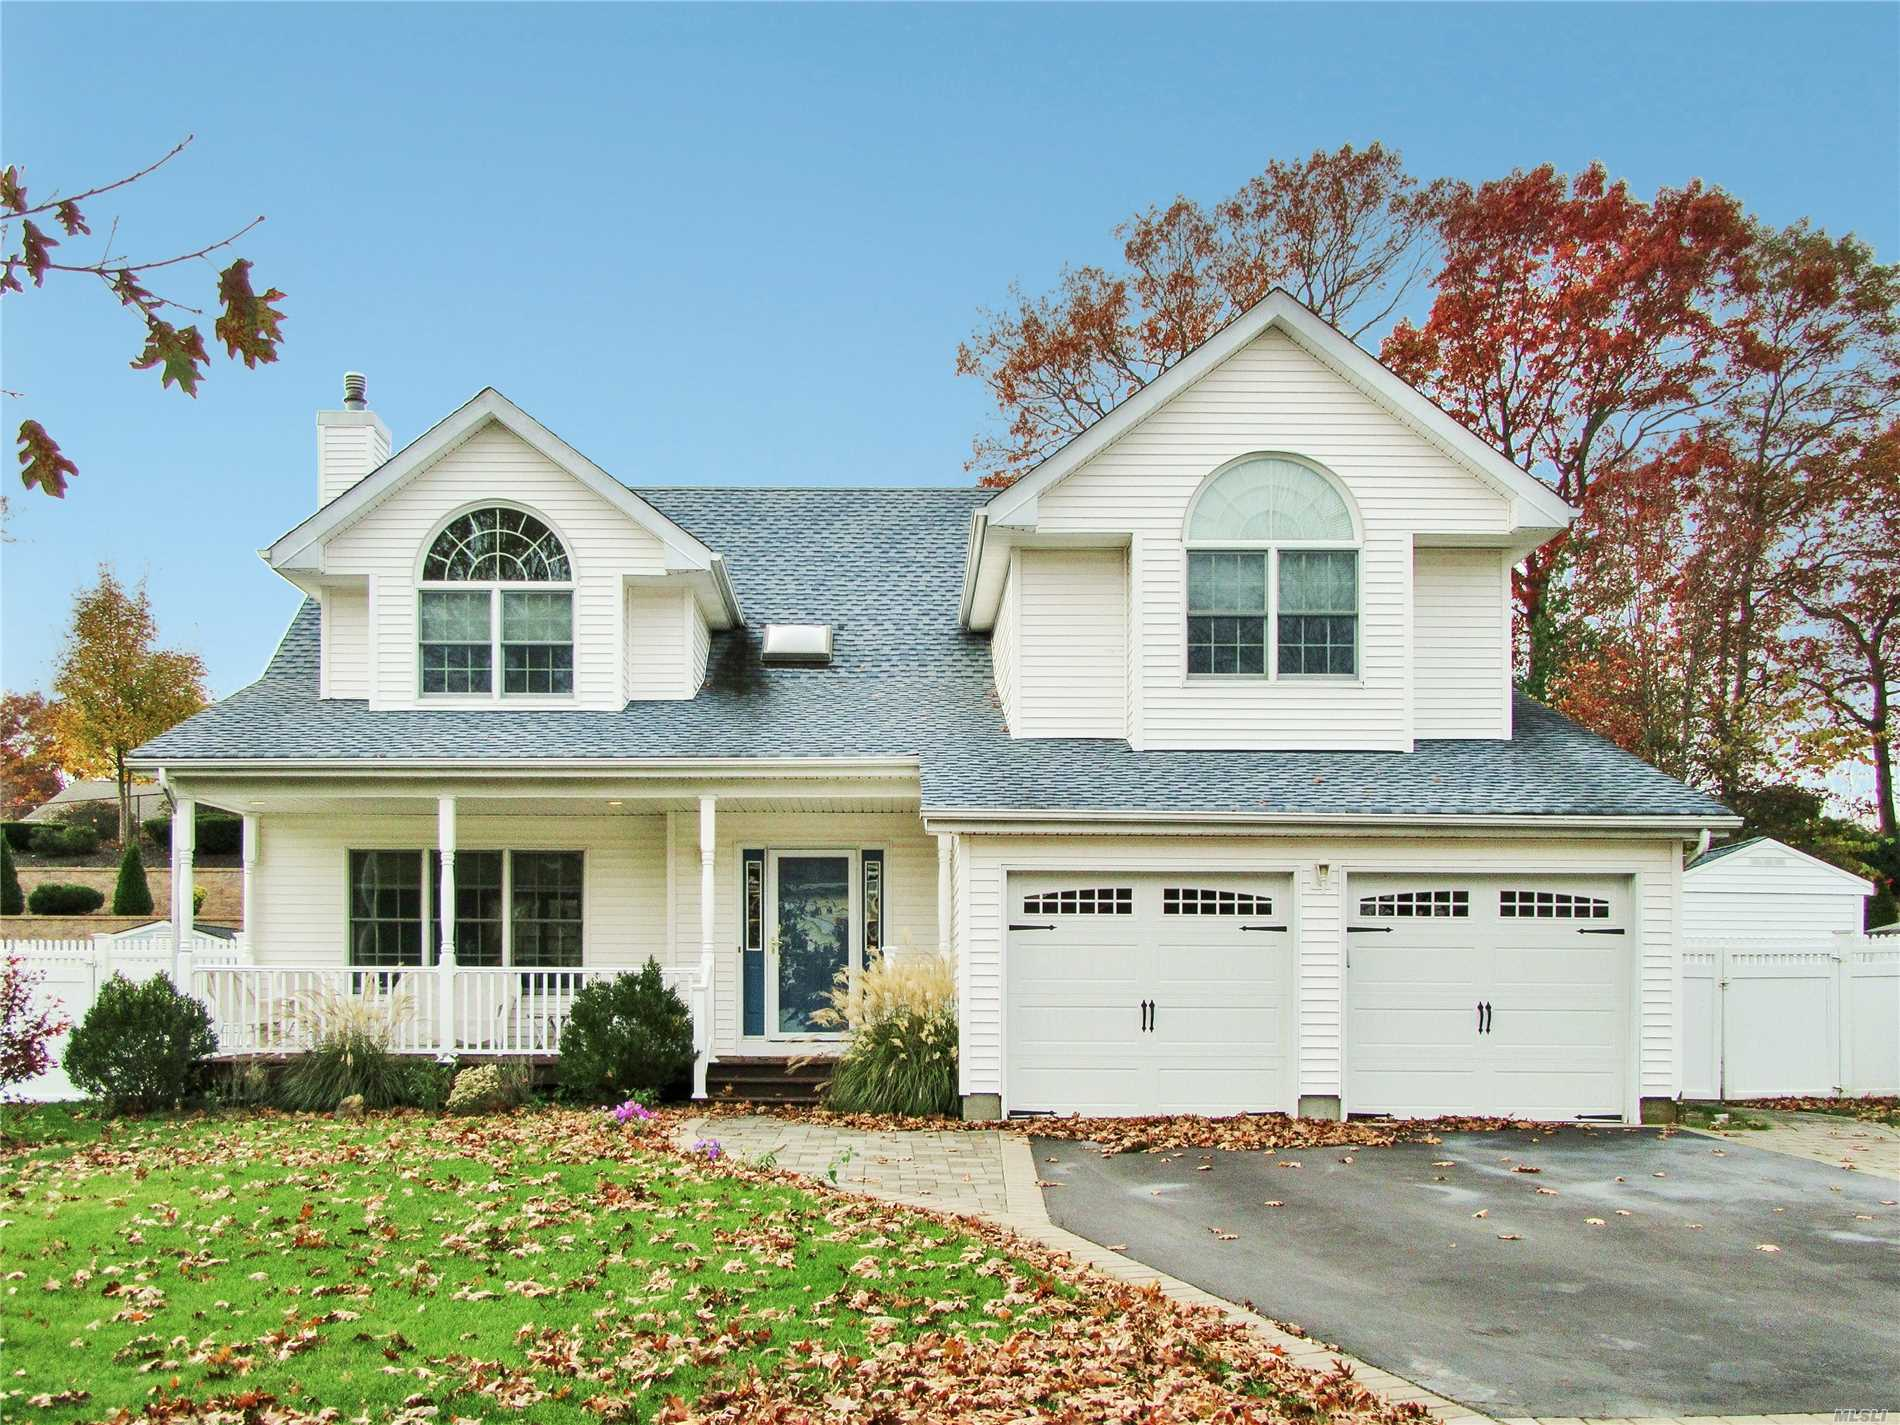 The Beautiful Updated Open Floor Plan Colonial Is Situated On A Cul De Sac With Sidewalks. All 3 Bathrooms Are New And Hardwood Floors Throughout The Home. Mastersuite Has Dual Entry Doors To A Large Suite